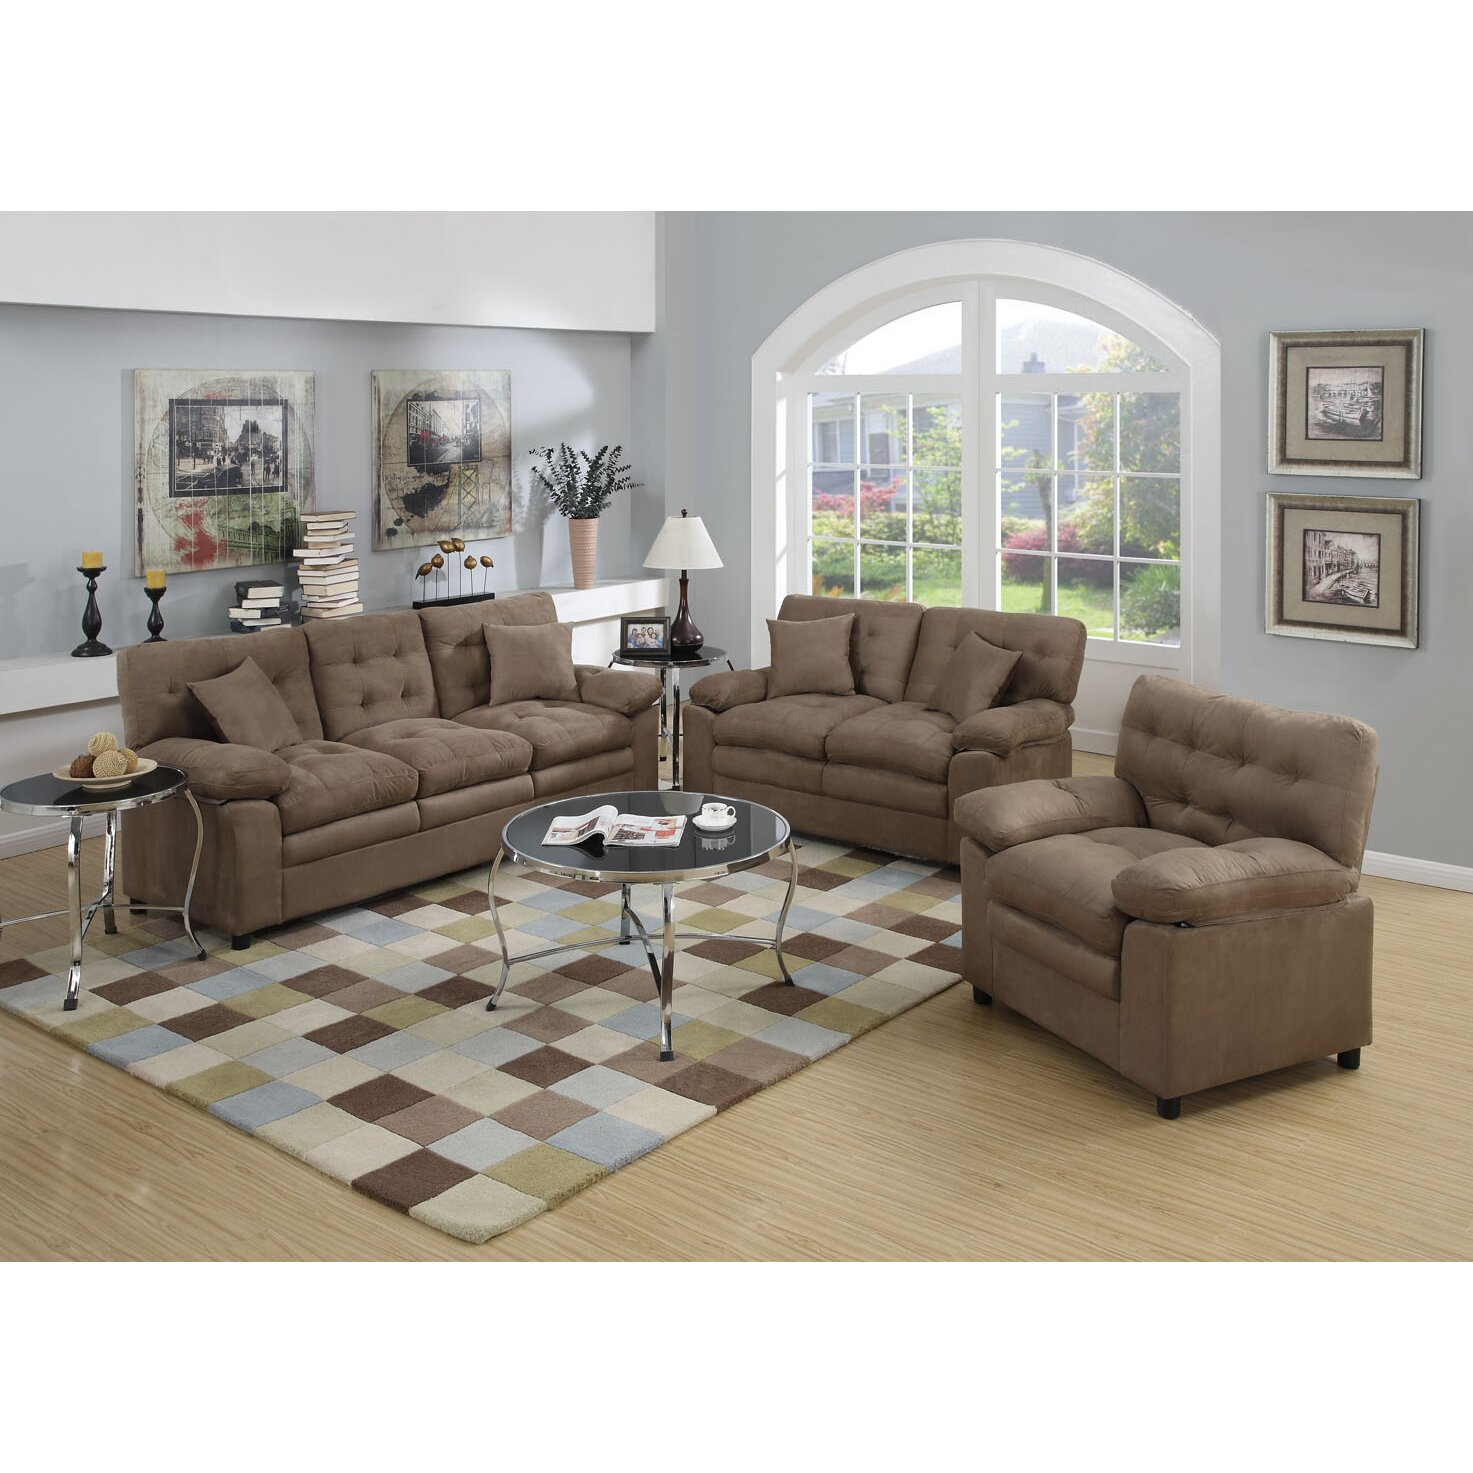 Poundex bobkona colona 3 piece living room set reviews for Living room sofa sets